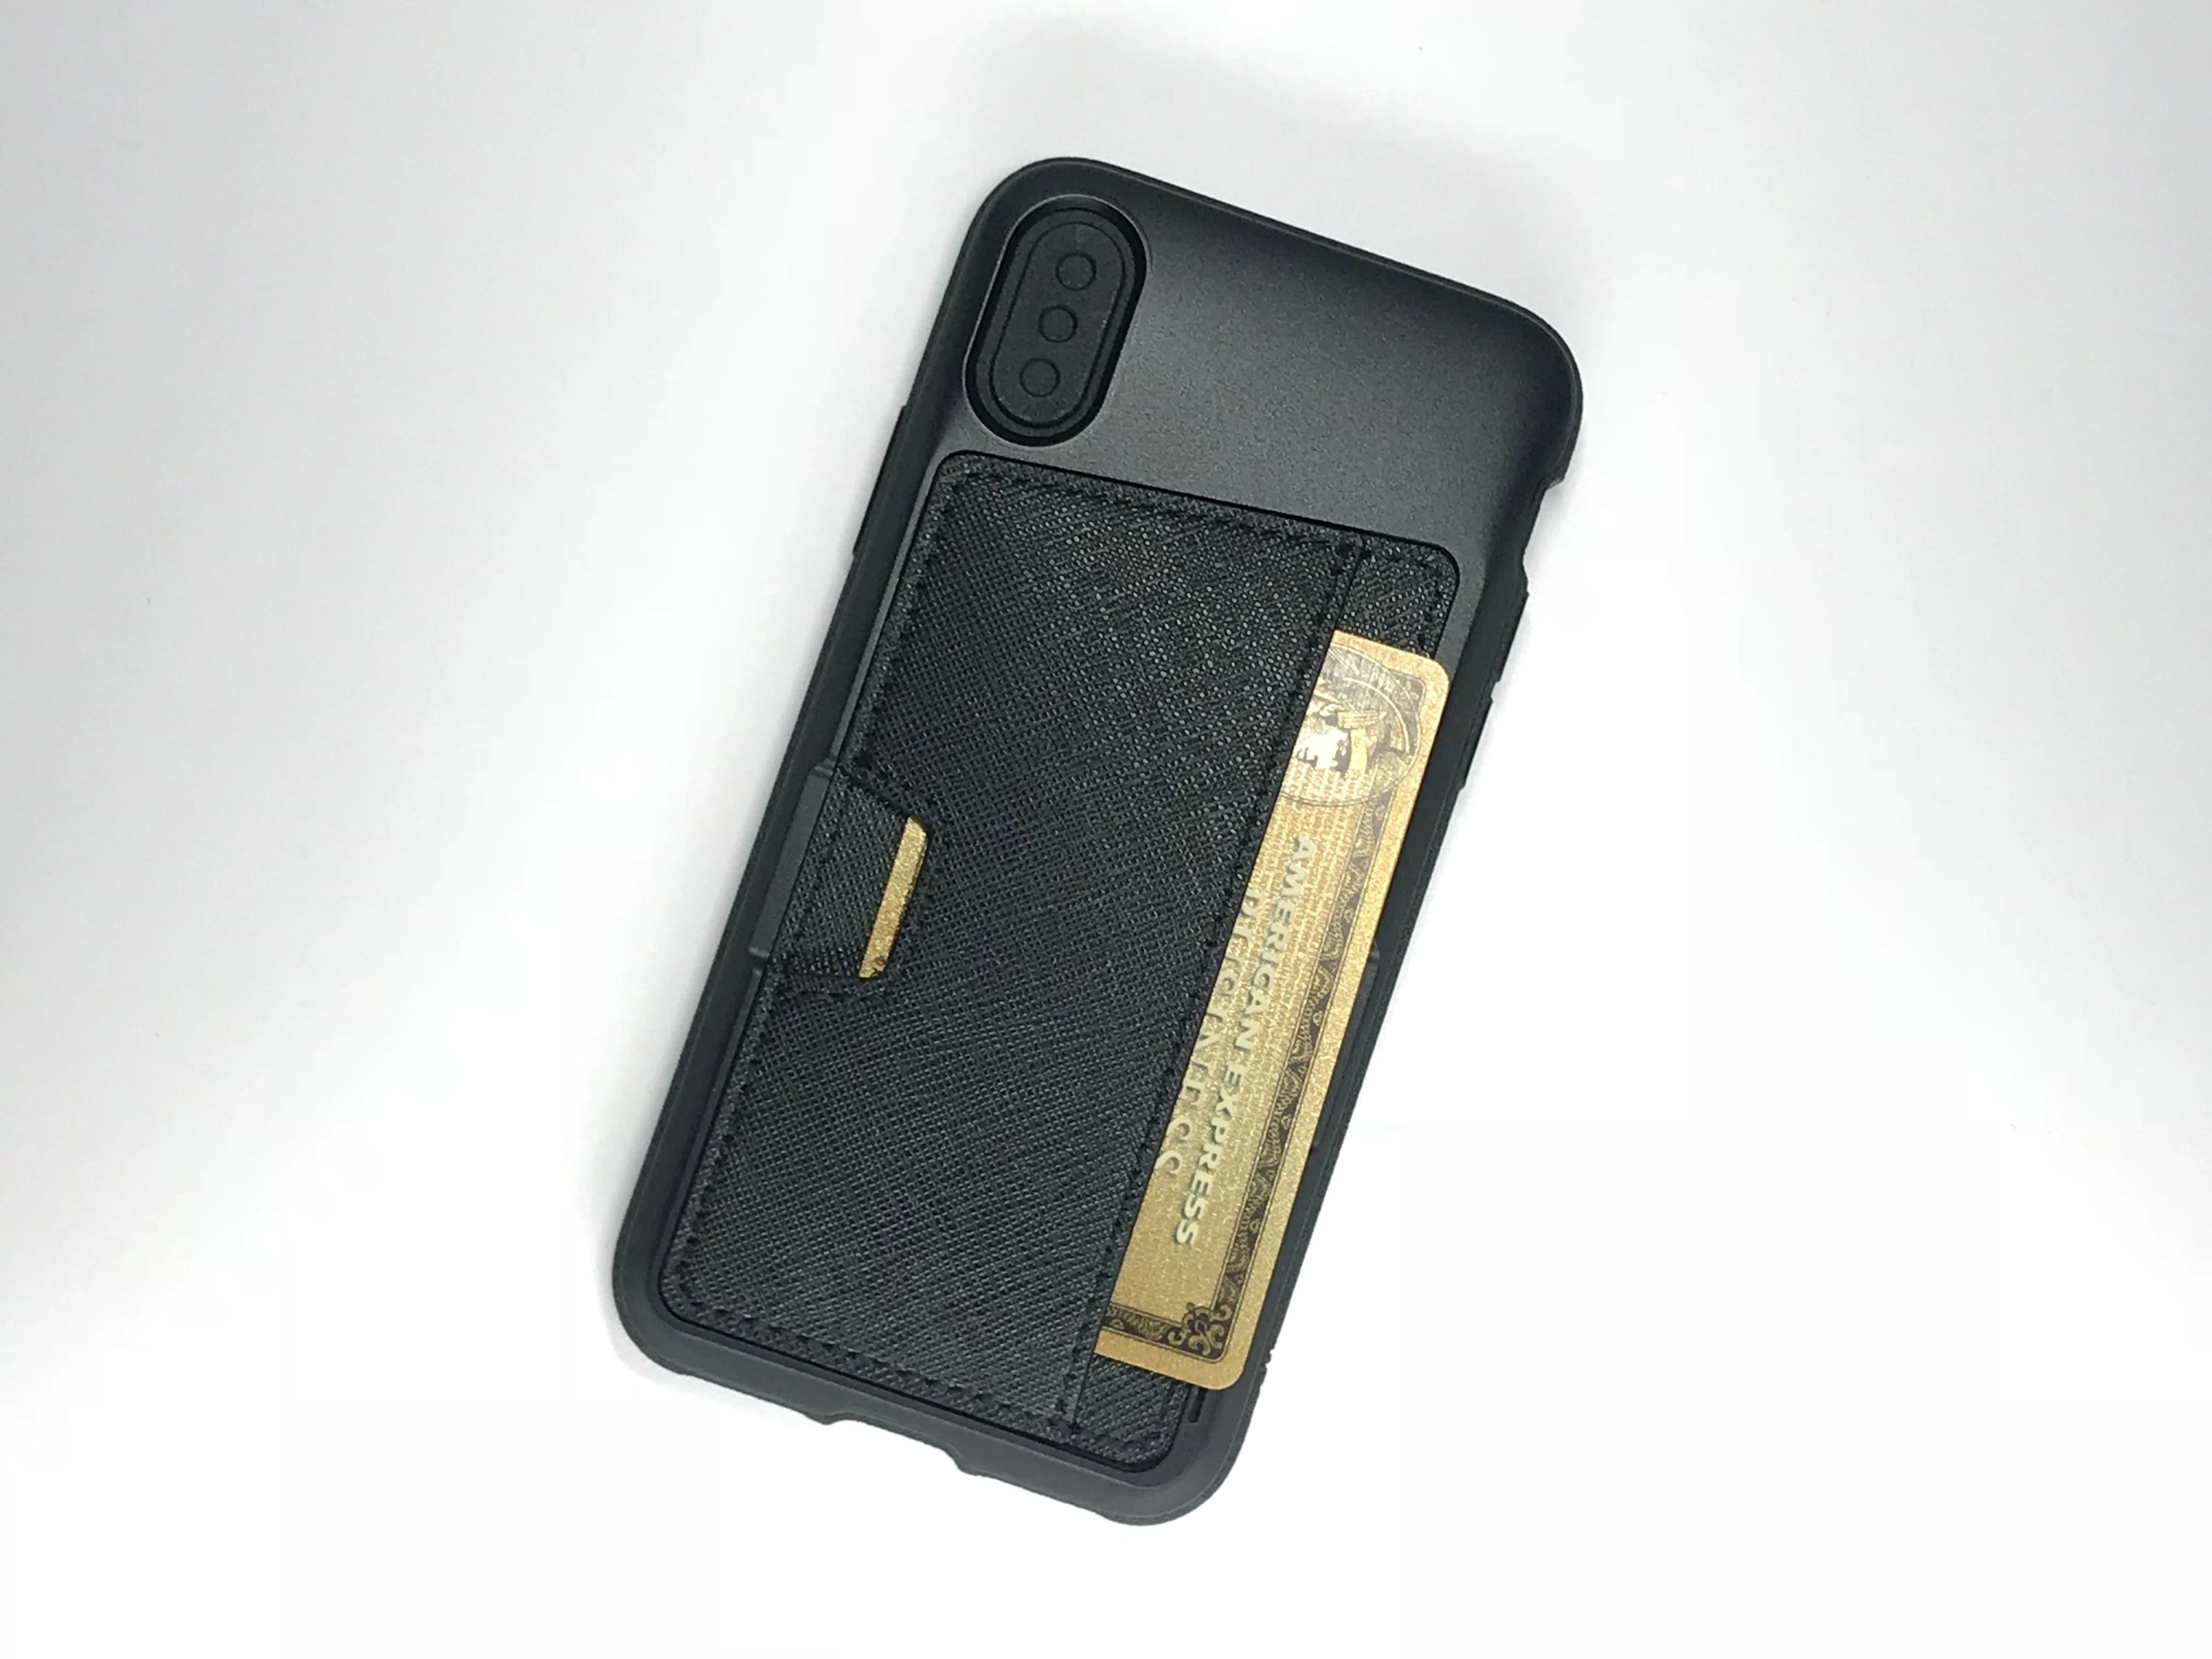 separation shoes af09e 1344c Is it Safe to Wirelessly Charge the iPhone With a Wallet Case?